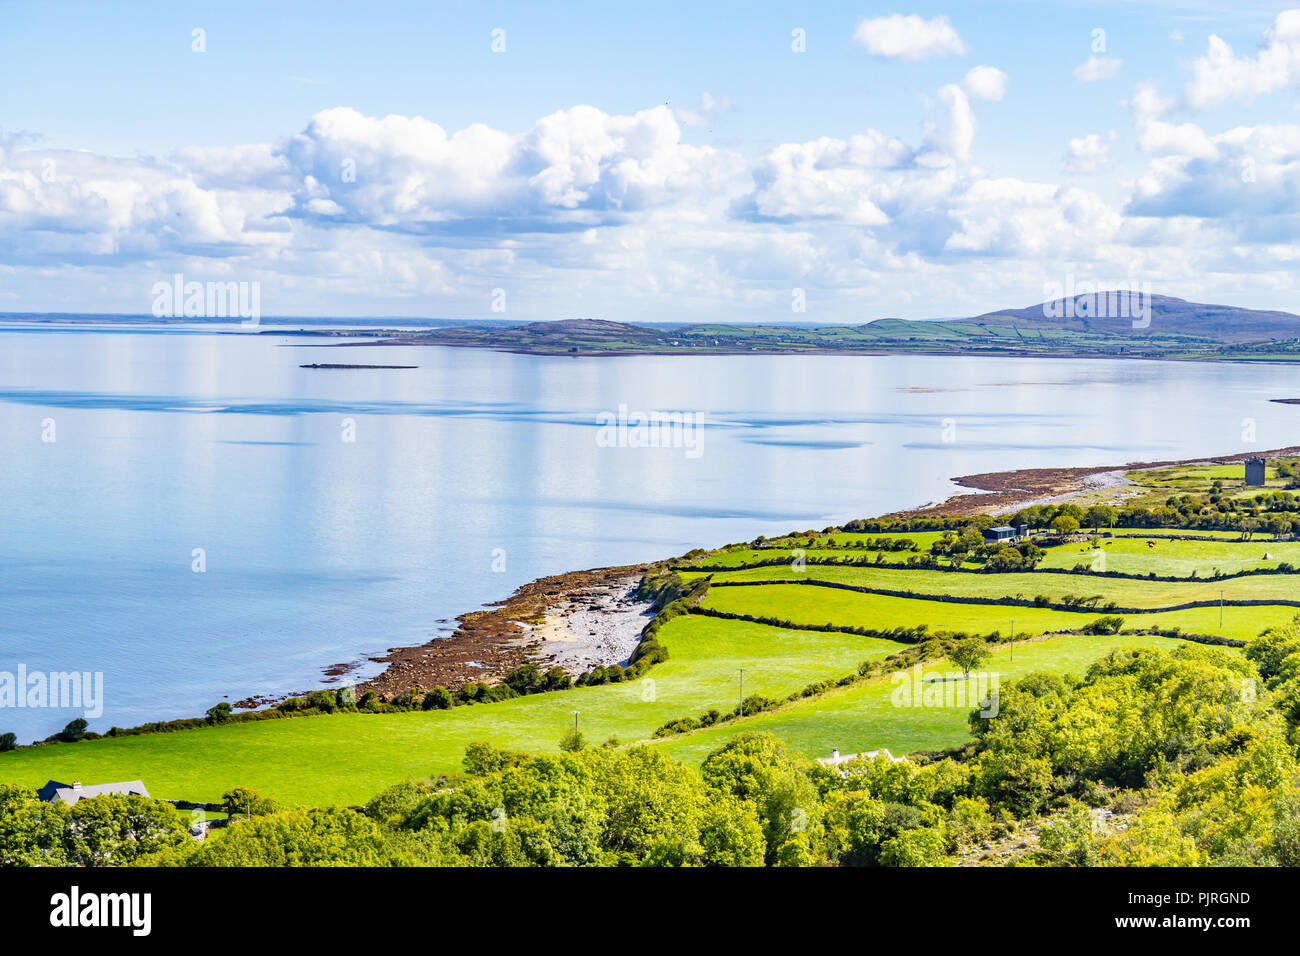 Farms and beach in Ballyvaughan, Clare, Ireland - Stock Image